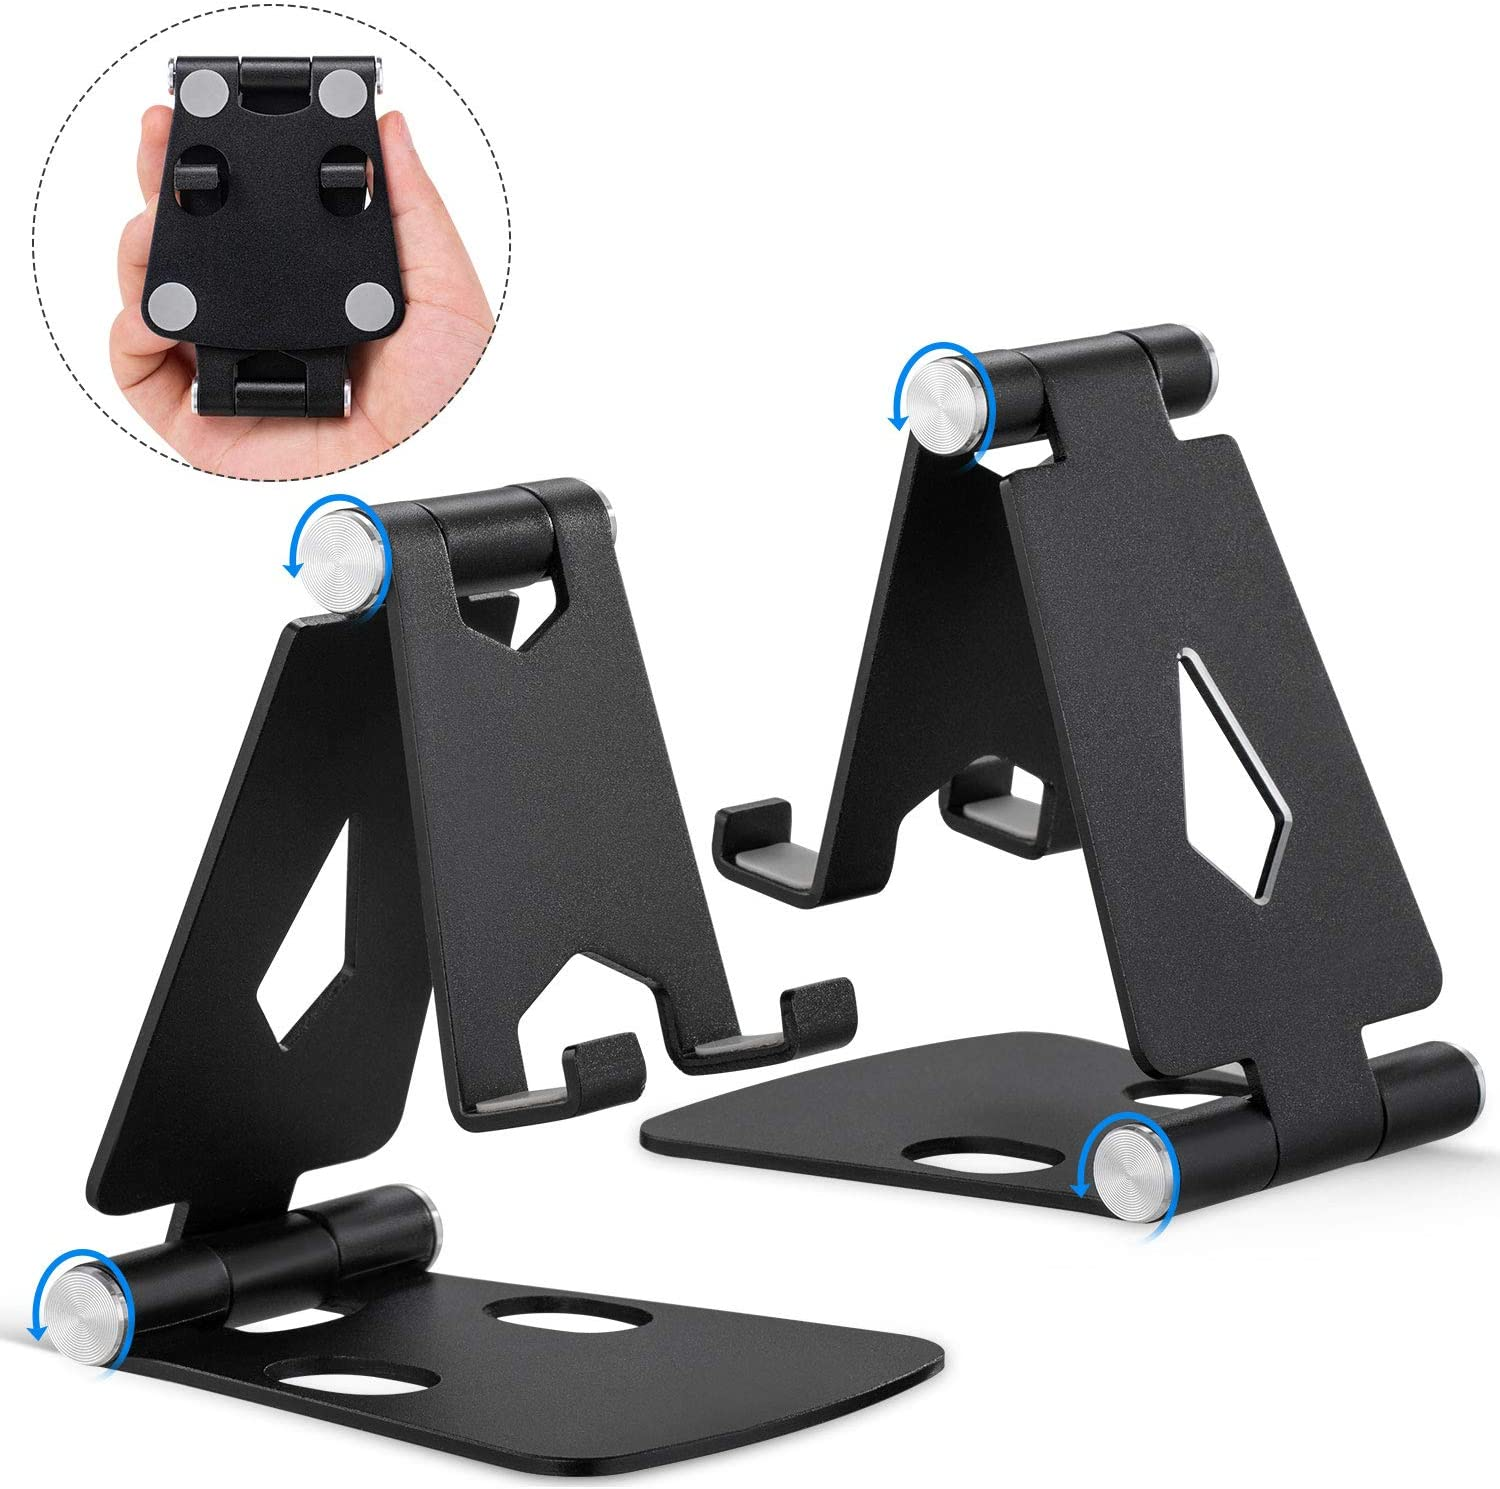 Adjustable Cellphone Stand, Cabepow 2Pack Aluminum Desktop Phone Holder with Anti-Slip Base and Convenient Charging Port for iPhone 11 Xs XR X 8 SE 2020, All Android Smartphone